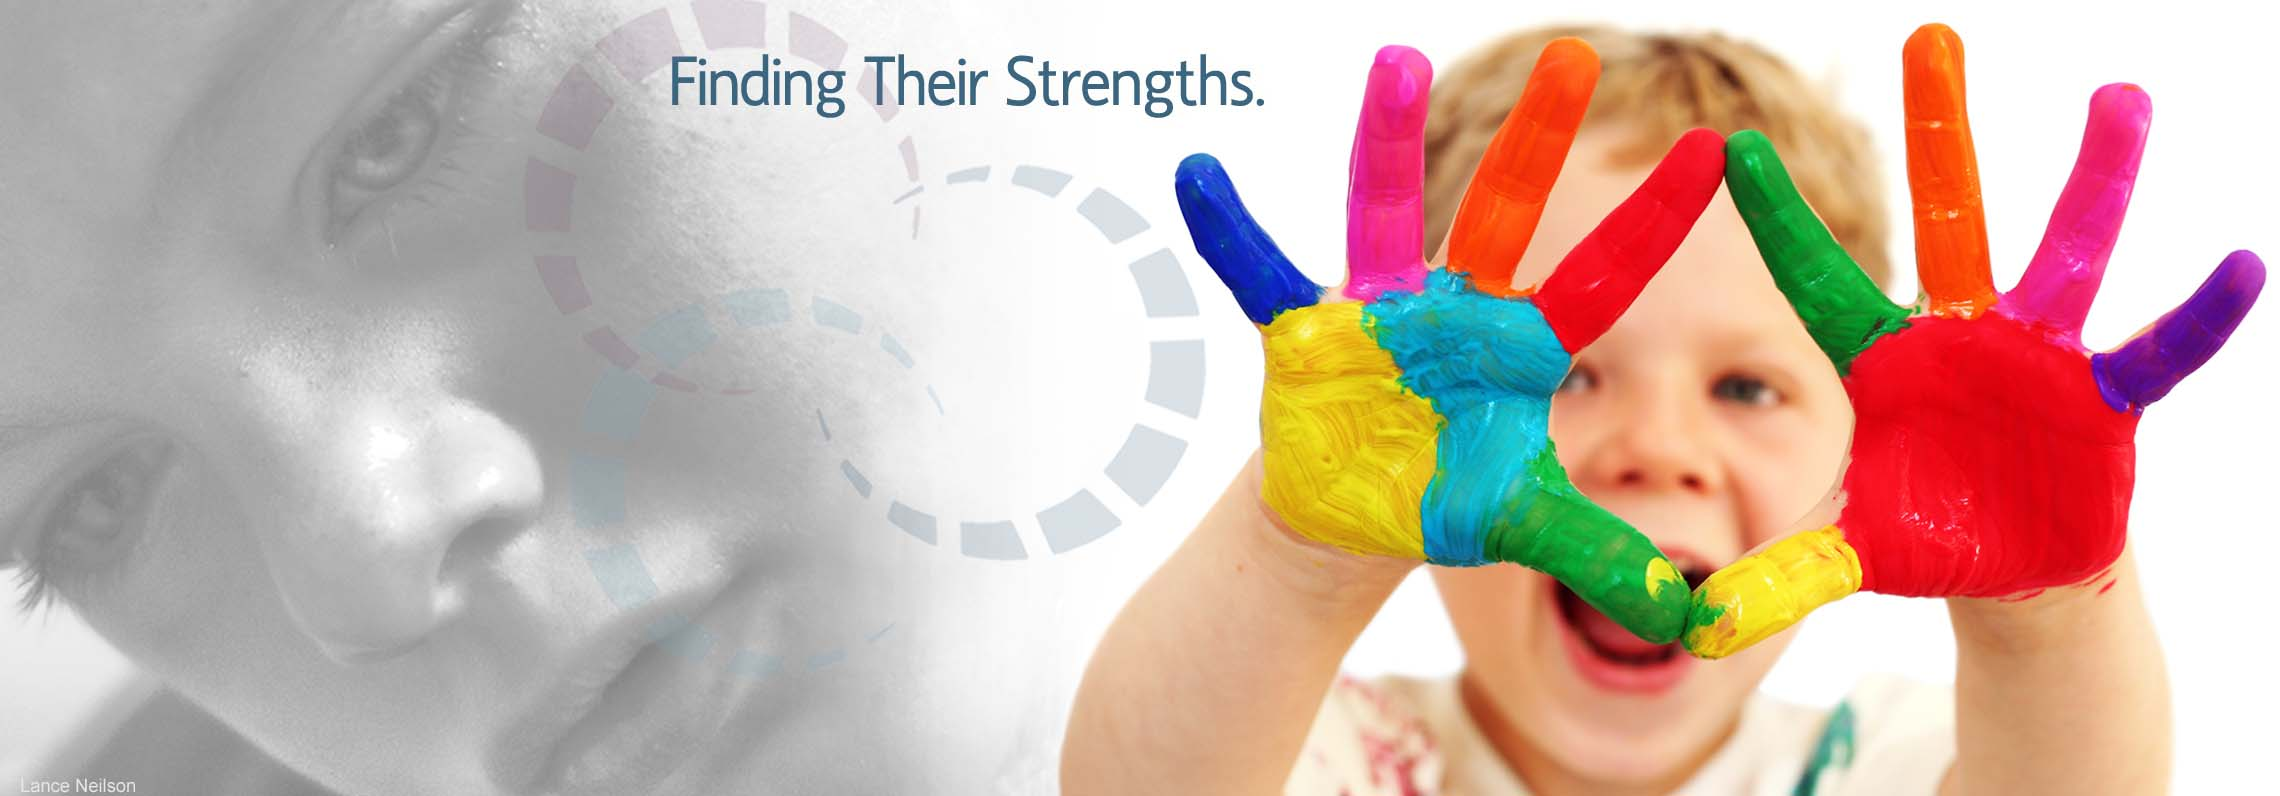 FINDING-THEIR-STRENGTHS-SLIDE-Opaque-Logo